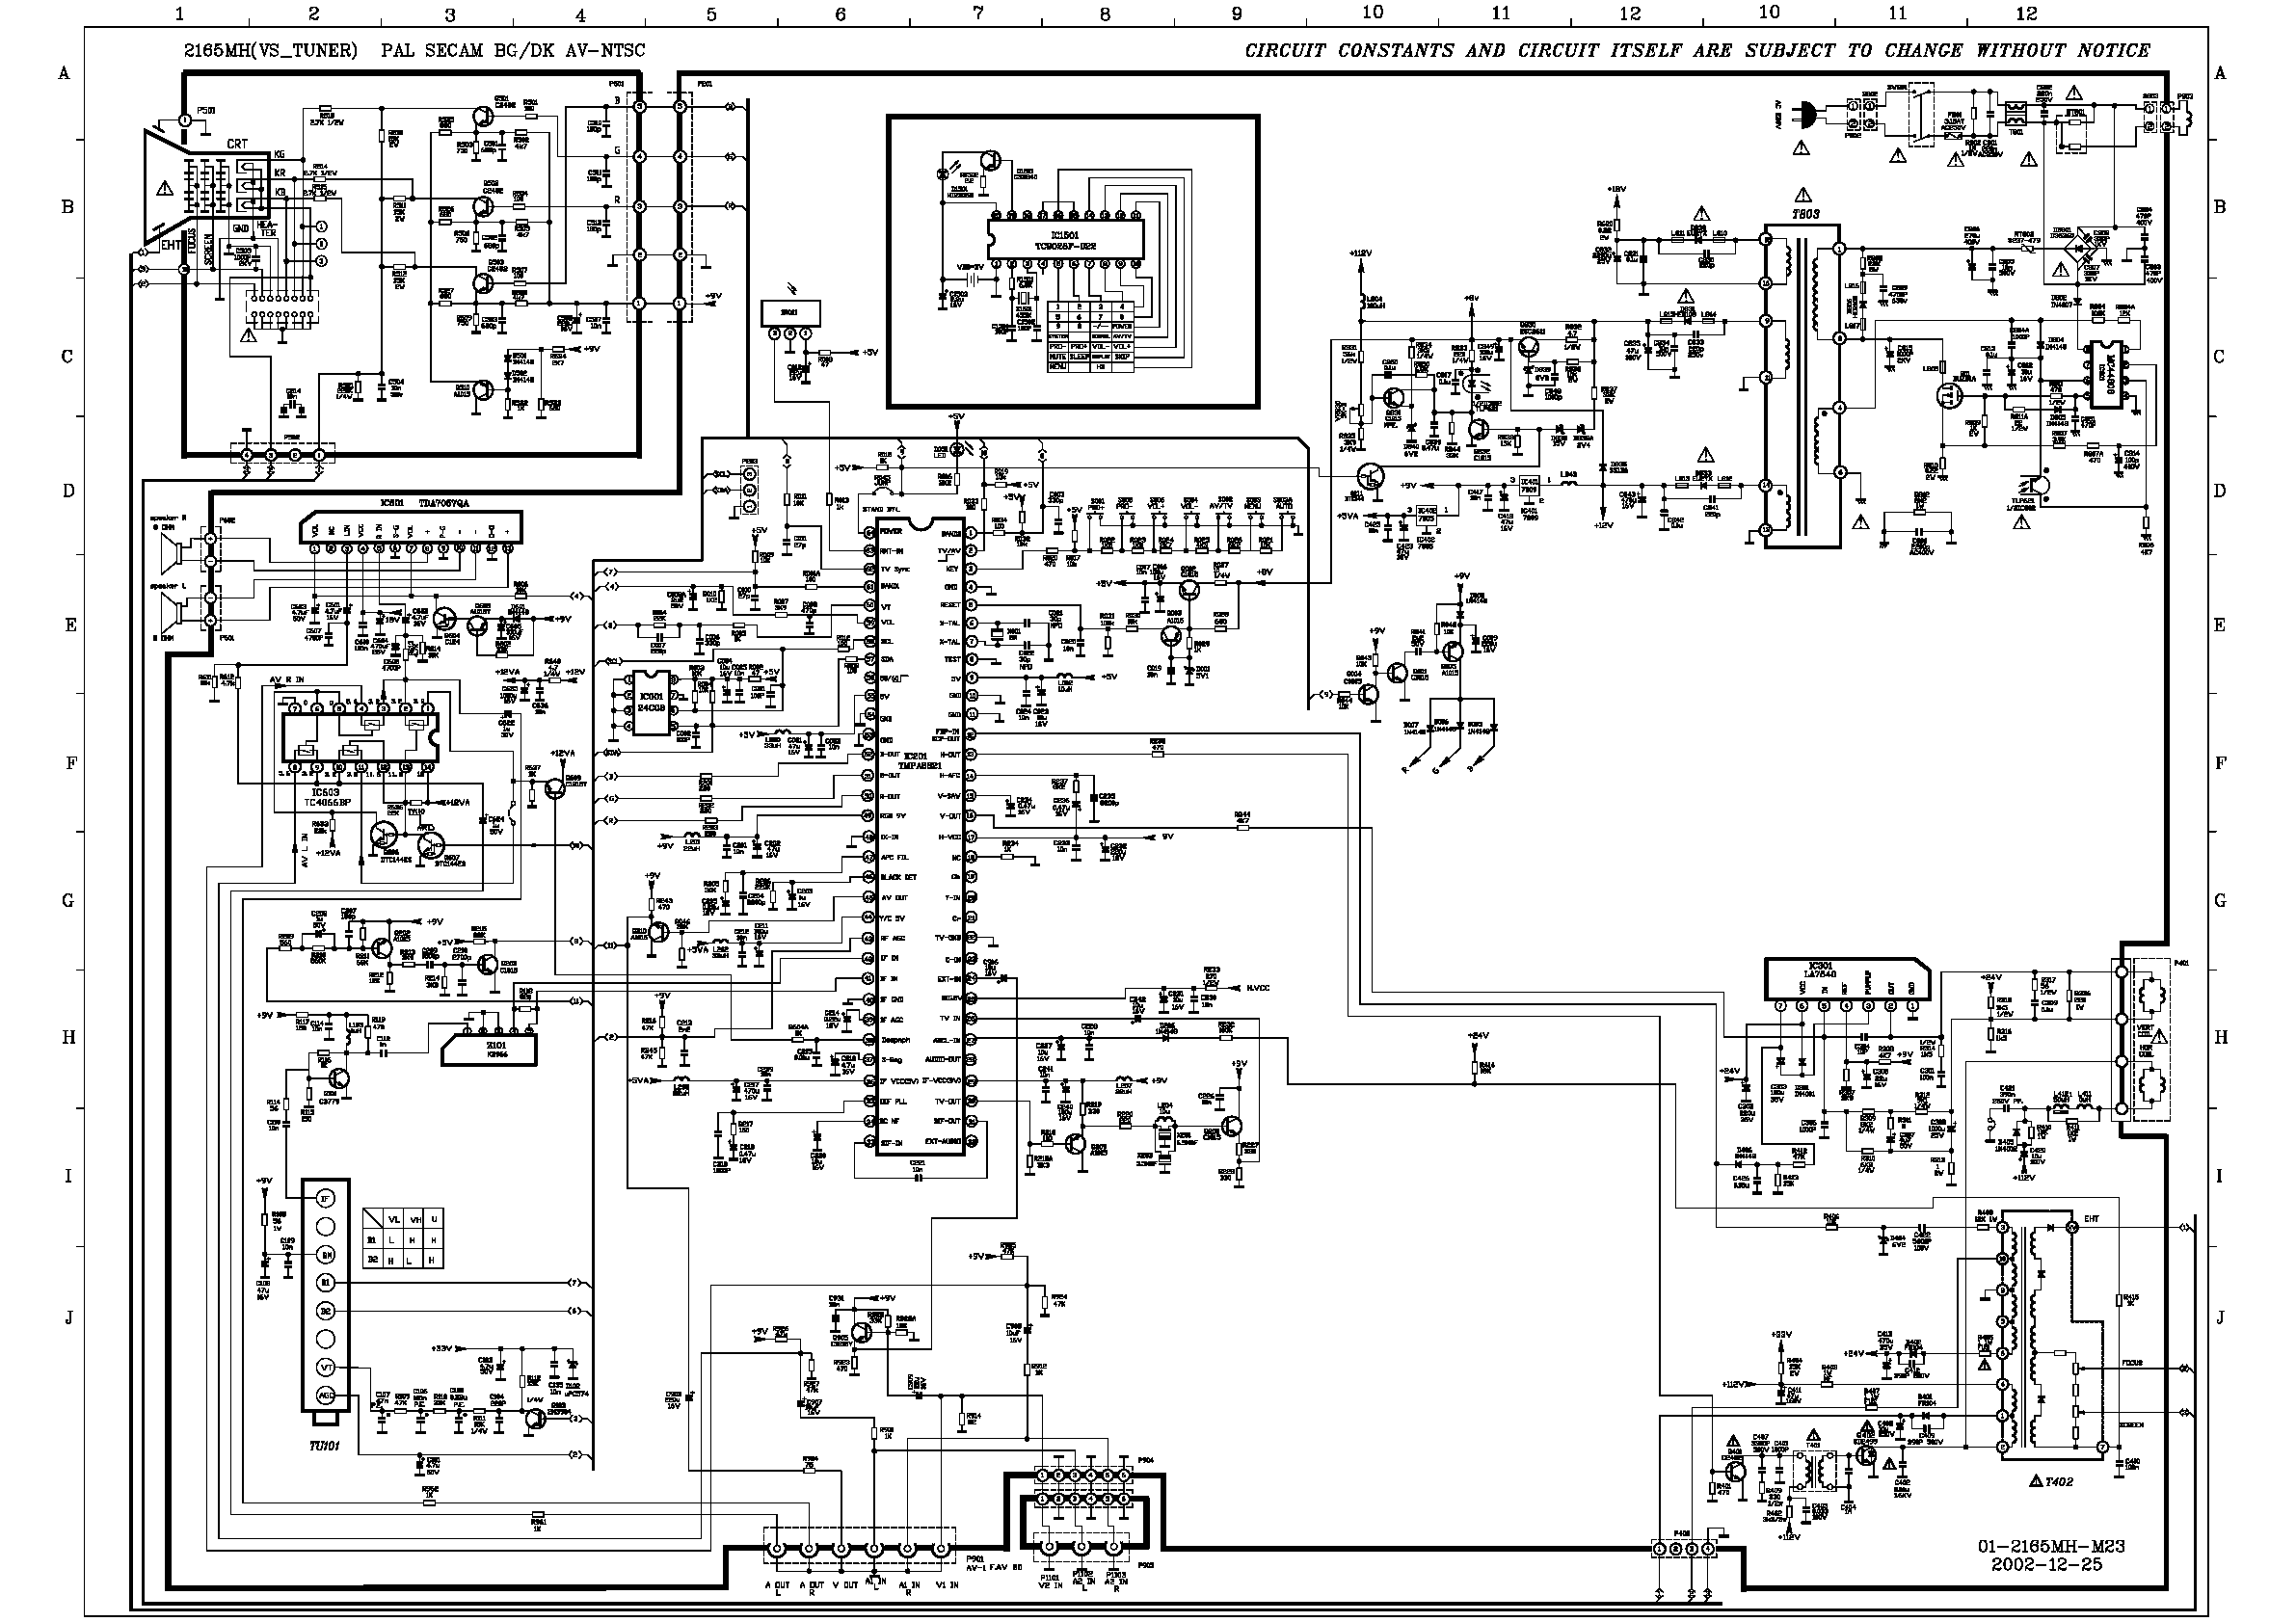 wiring diagram pal the wiring diagram toshiba wiring diagram toshiba printable wiring diagrams wiring diagram